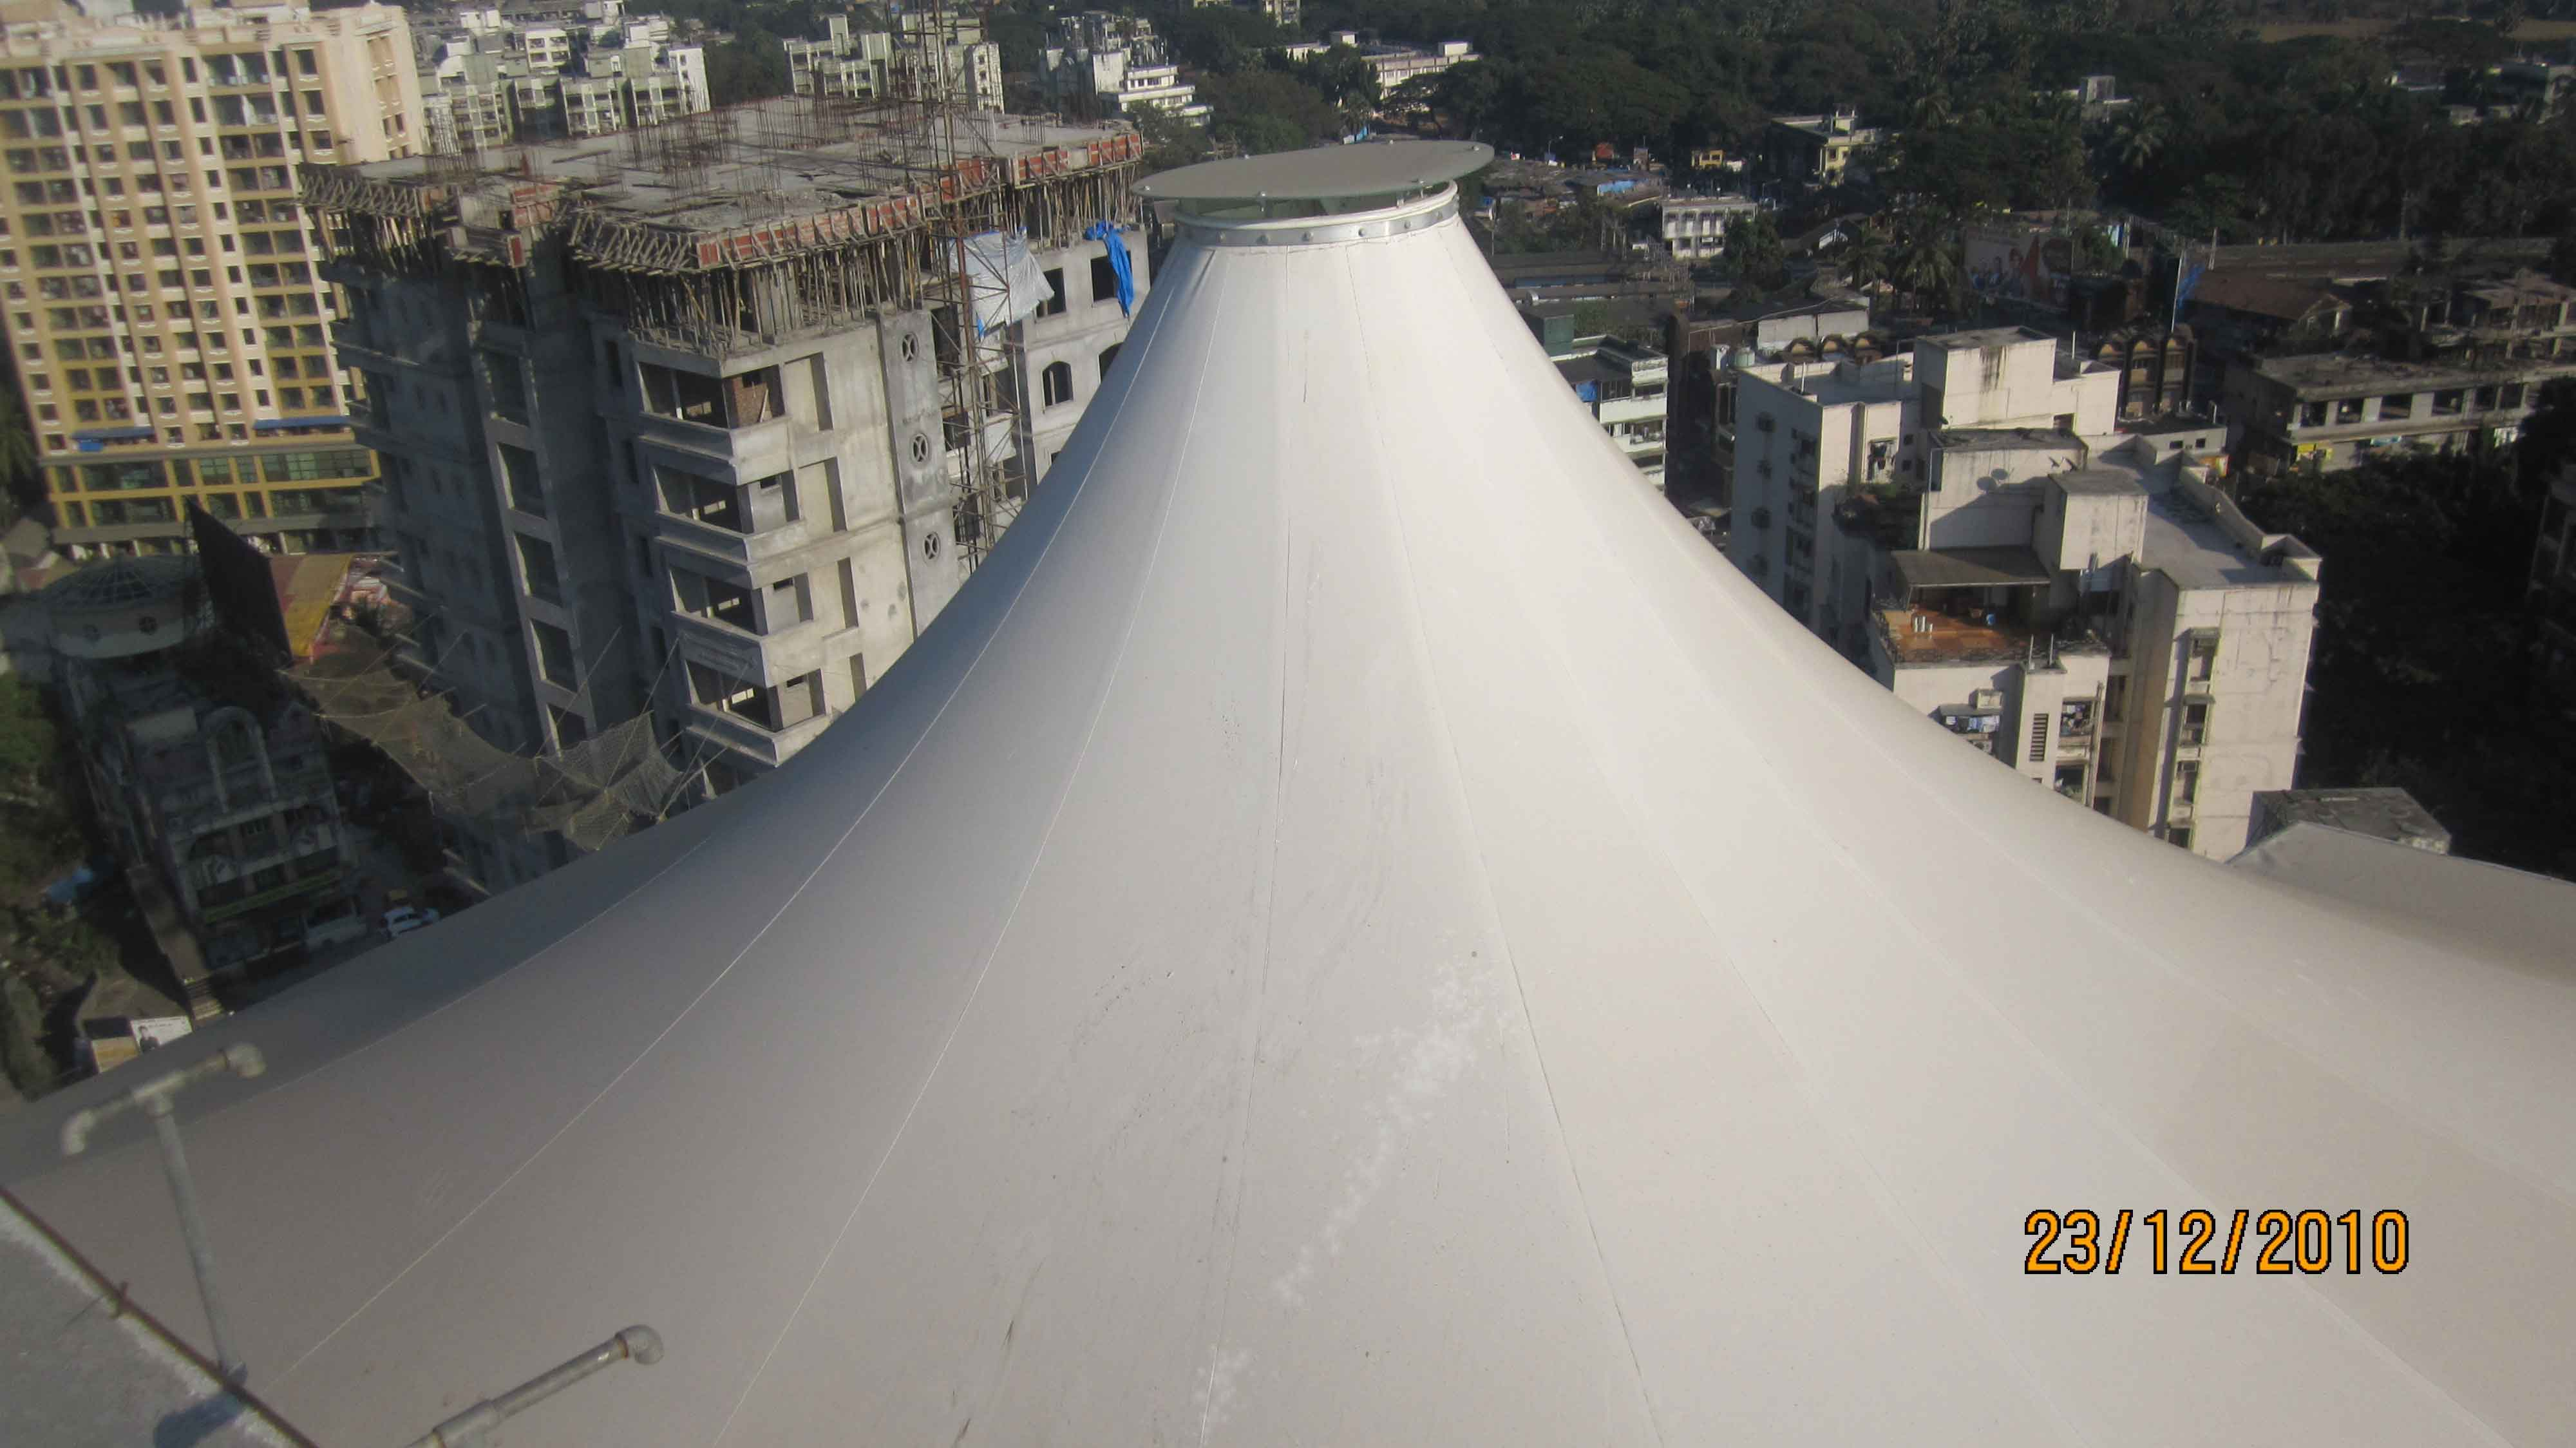 conarch roof fabric structure